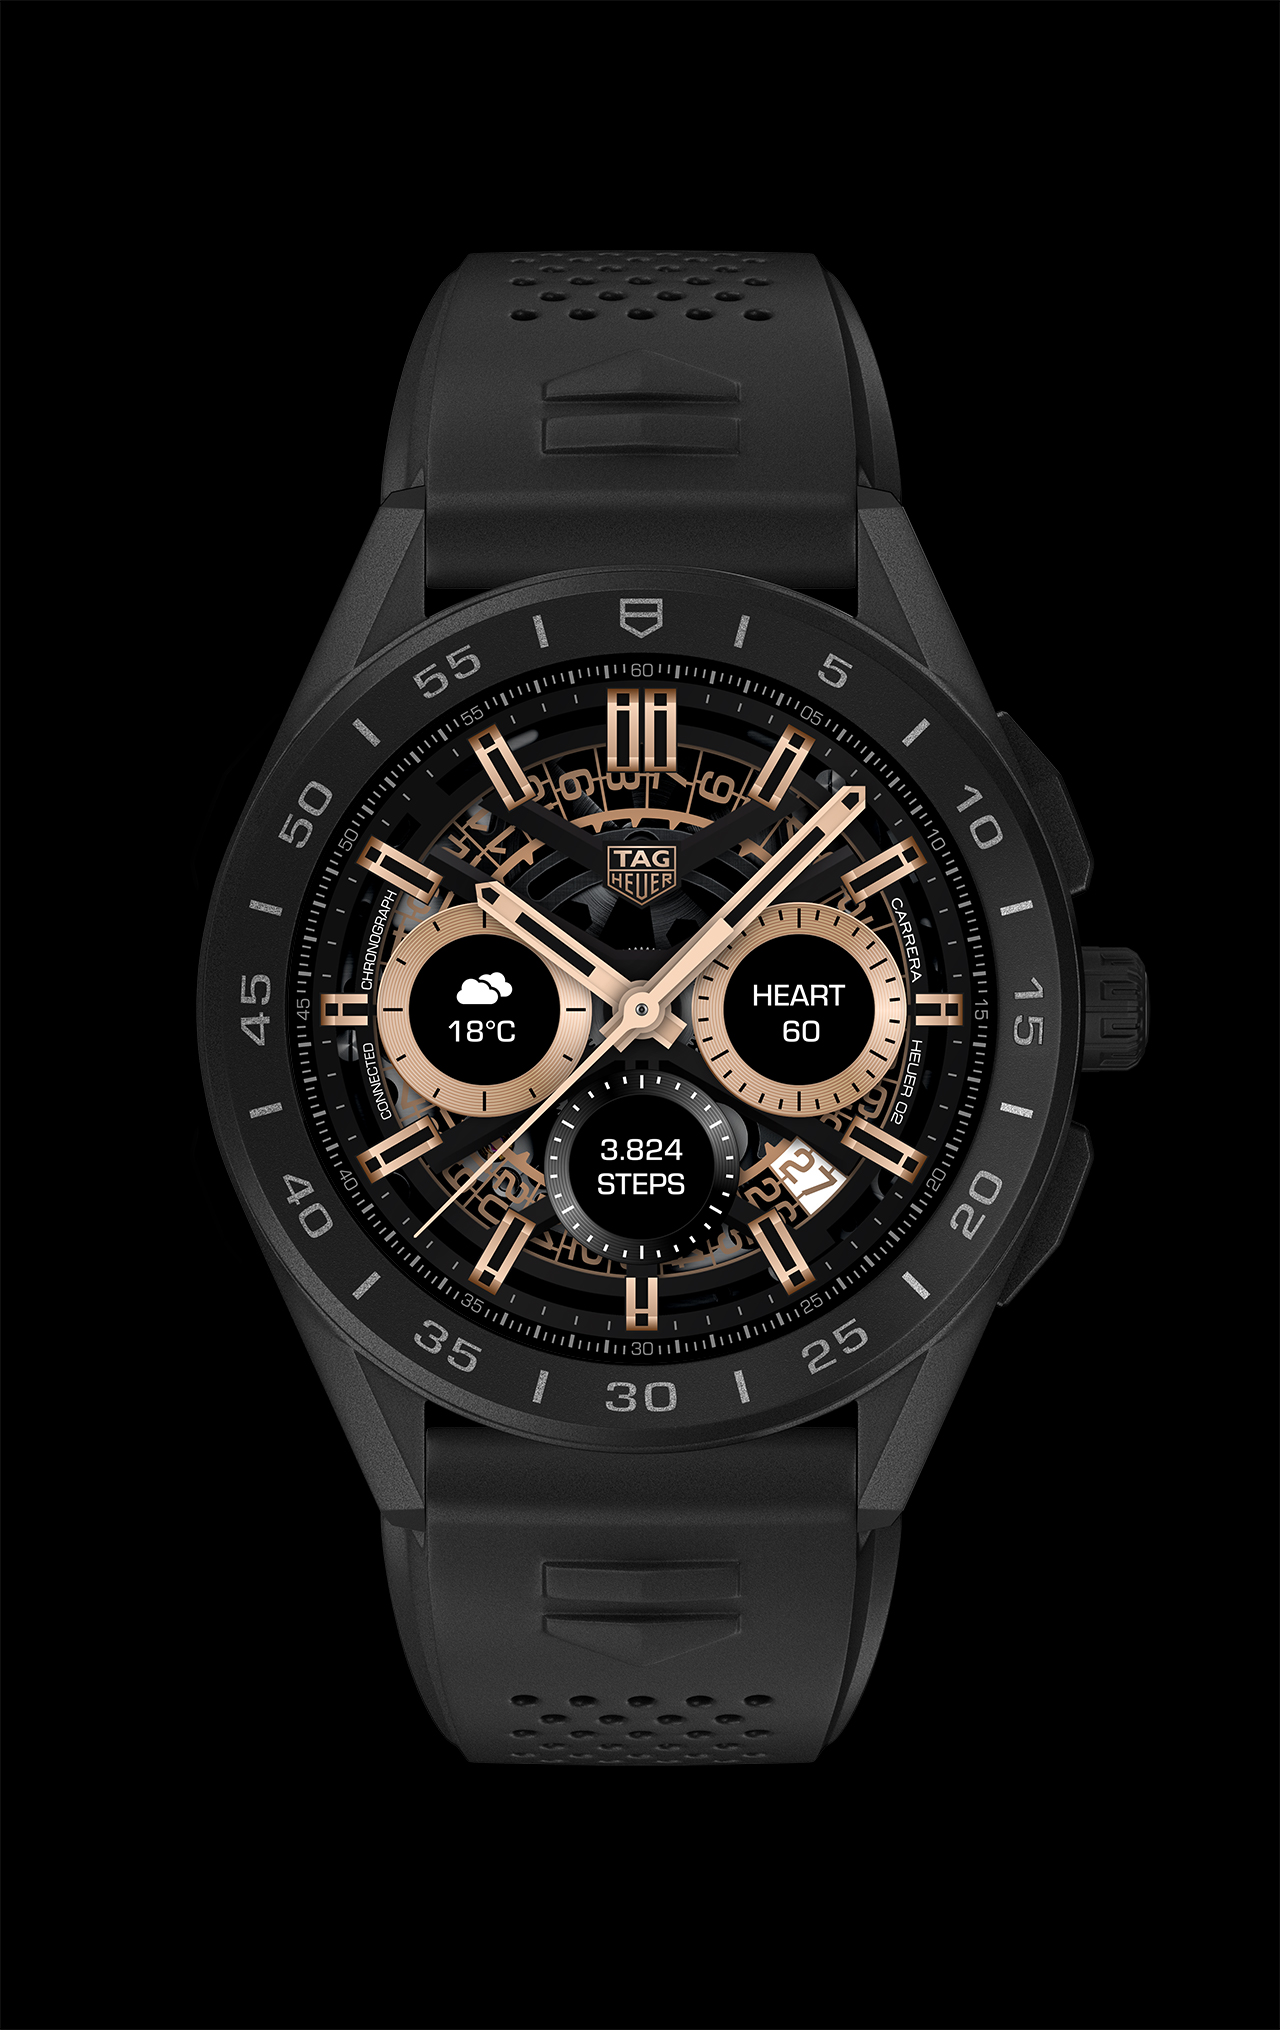 The TAG Heuer Connected bridges the physical and digital